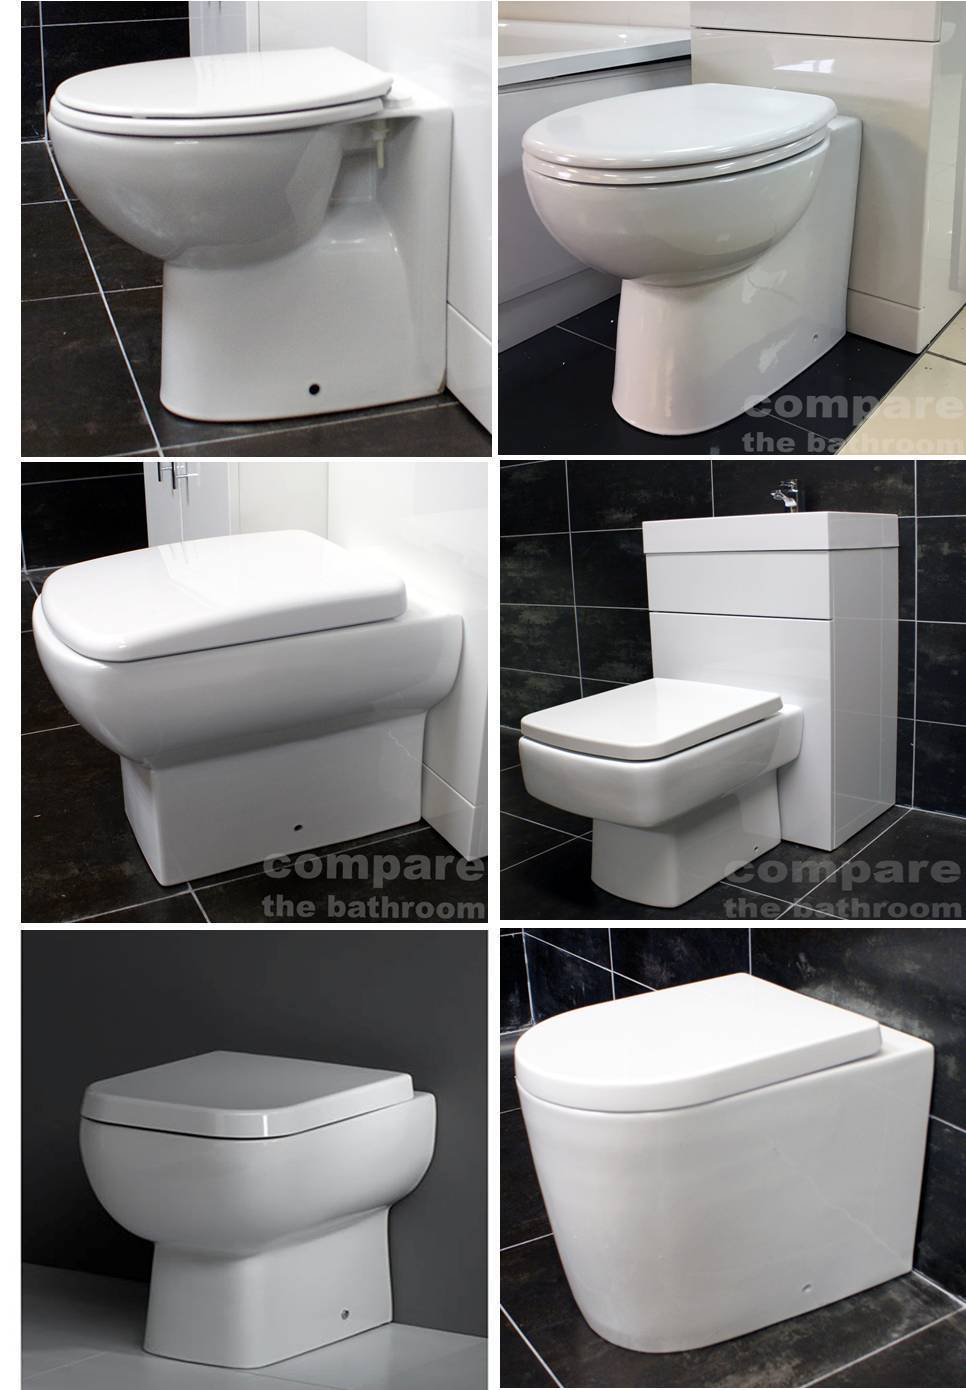 back to wall toilet pan selection all including seat wc square round modern 222482127224 tewp. Black Bedroom Furniture Sets. Home Design Ideas